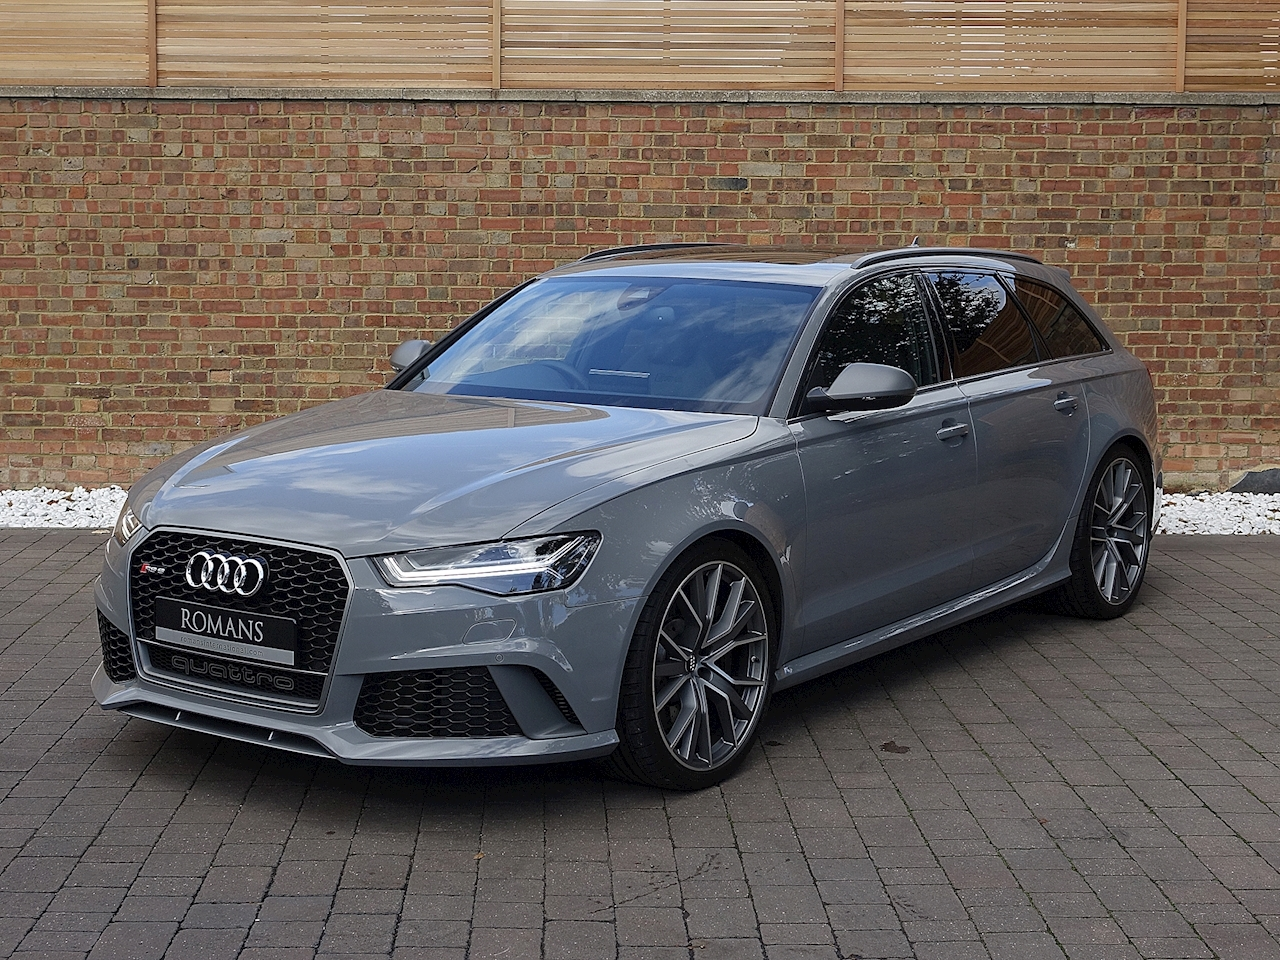 2017 used audi a6 rs6 avant quattro nardo grey. Black Bedroom Furniture Sets. Home Design Ideas